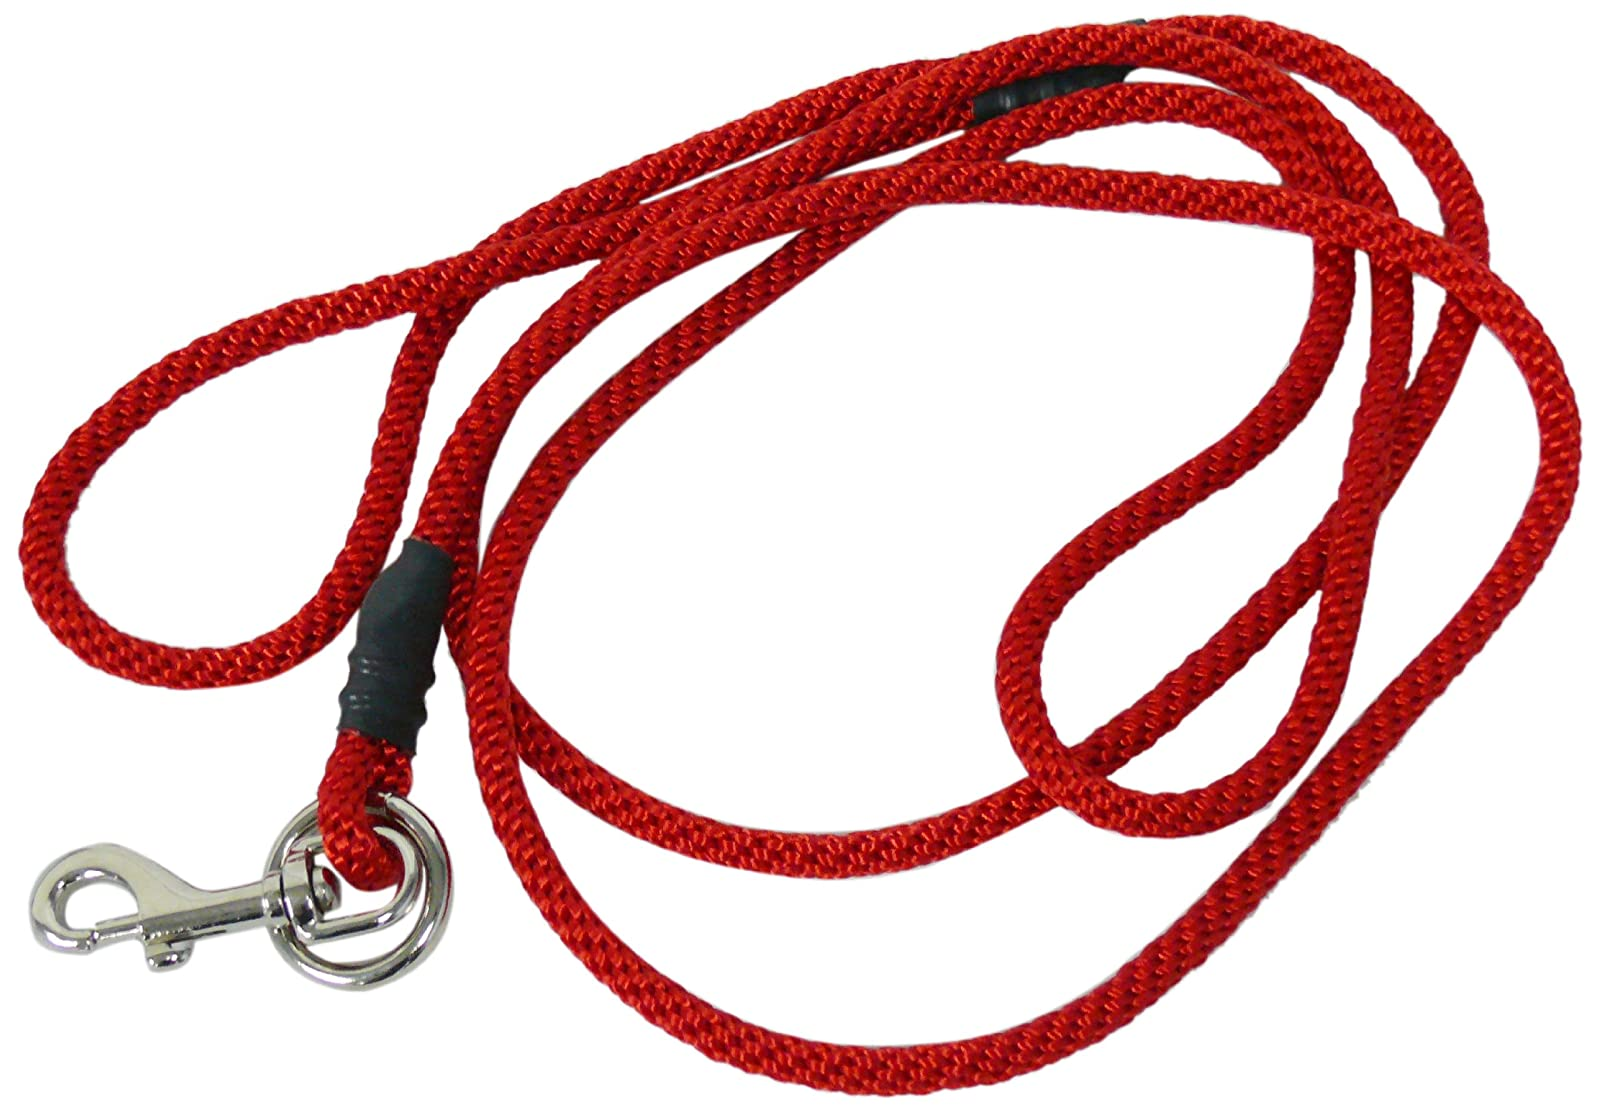 LOVE2PET® No Pull Dog Leash Small Red 094922392701 - 1